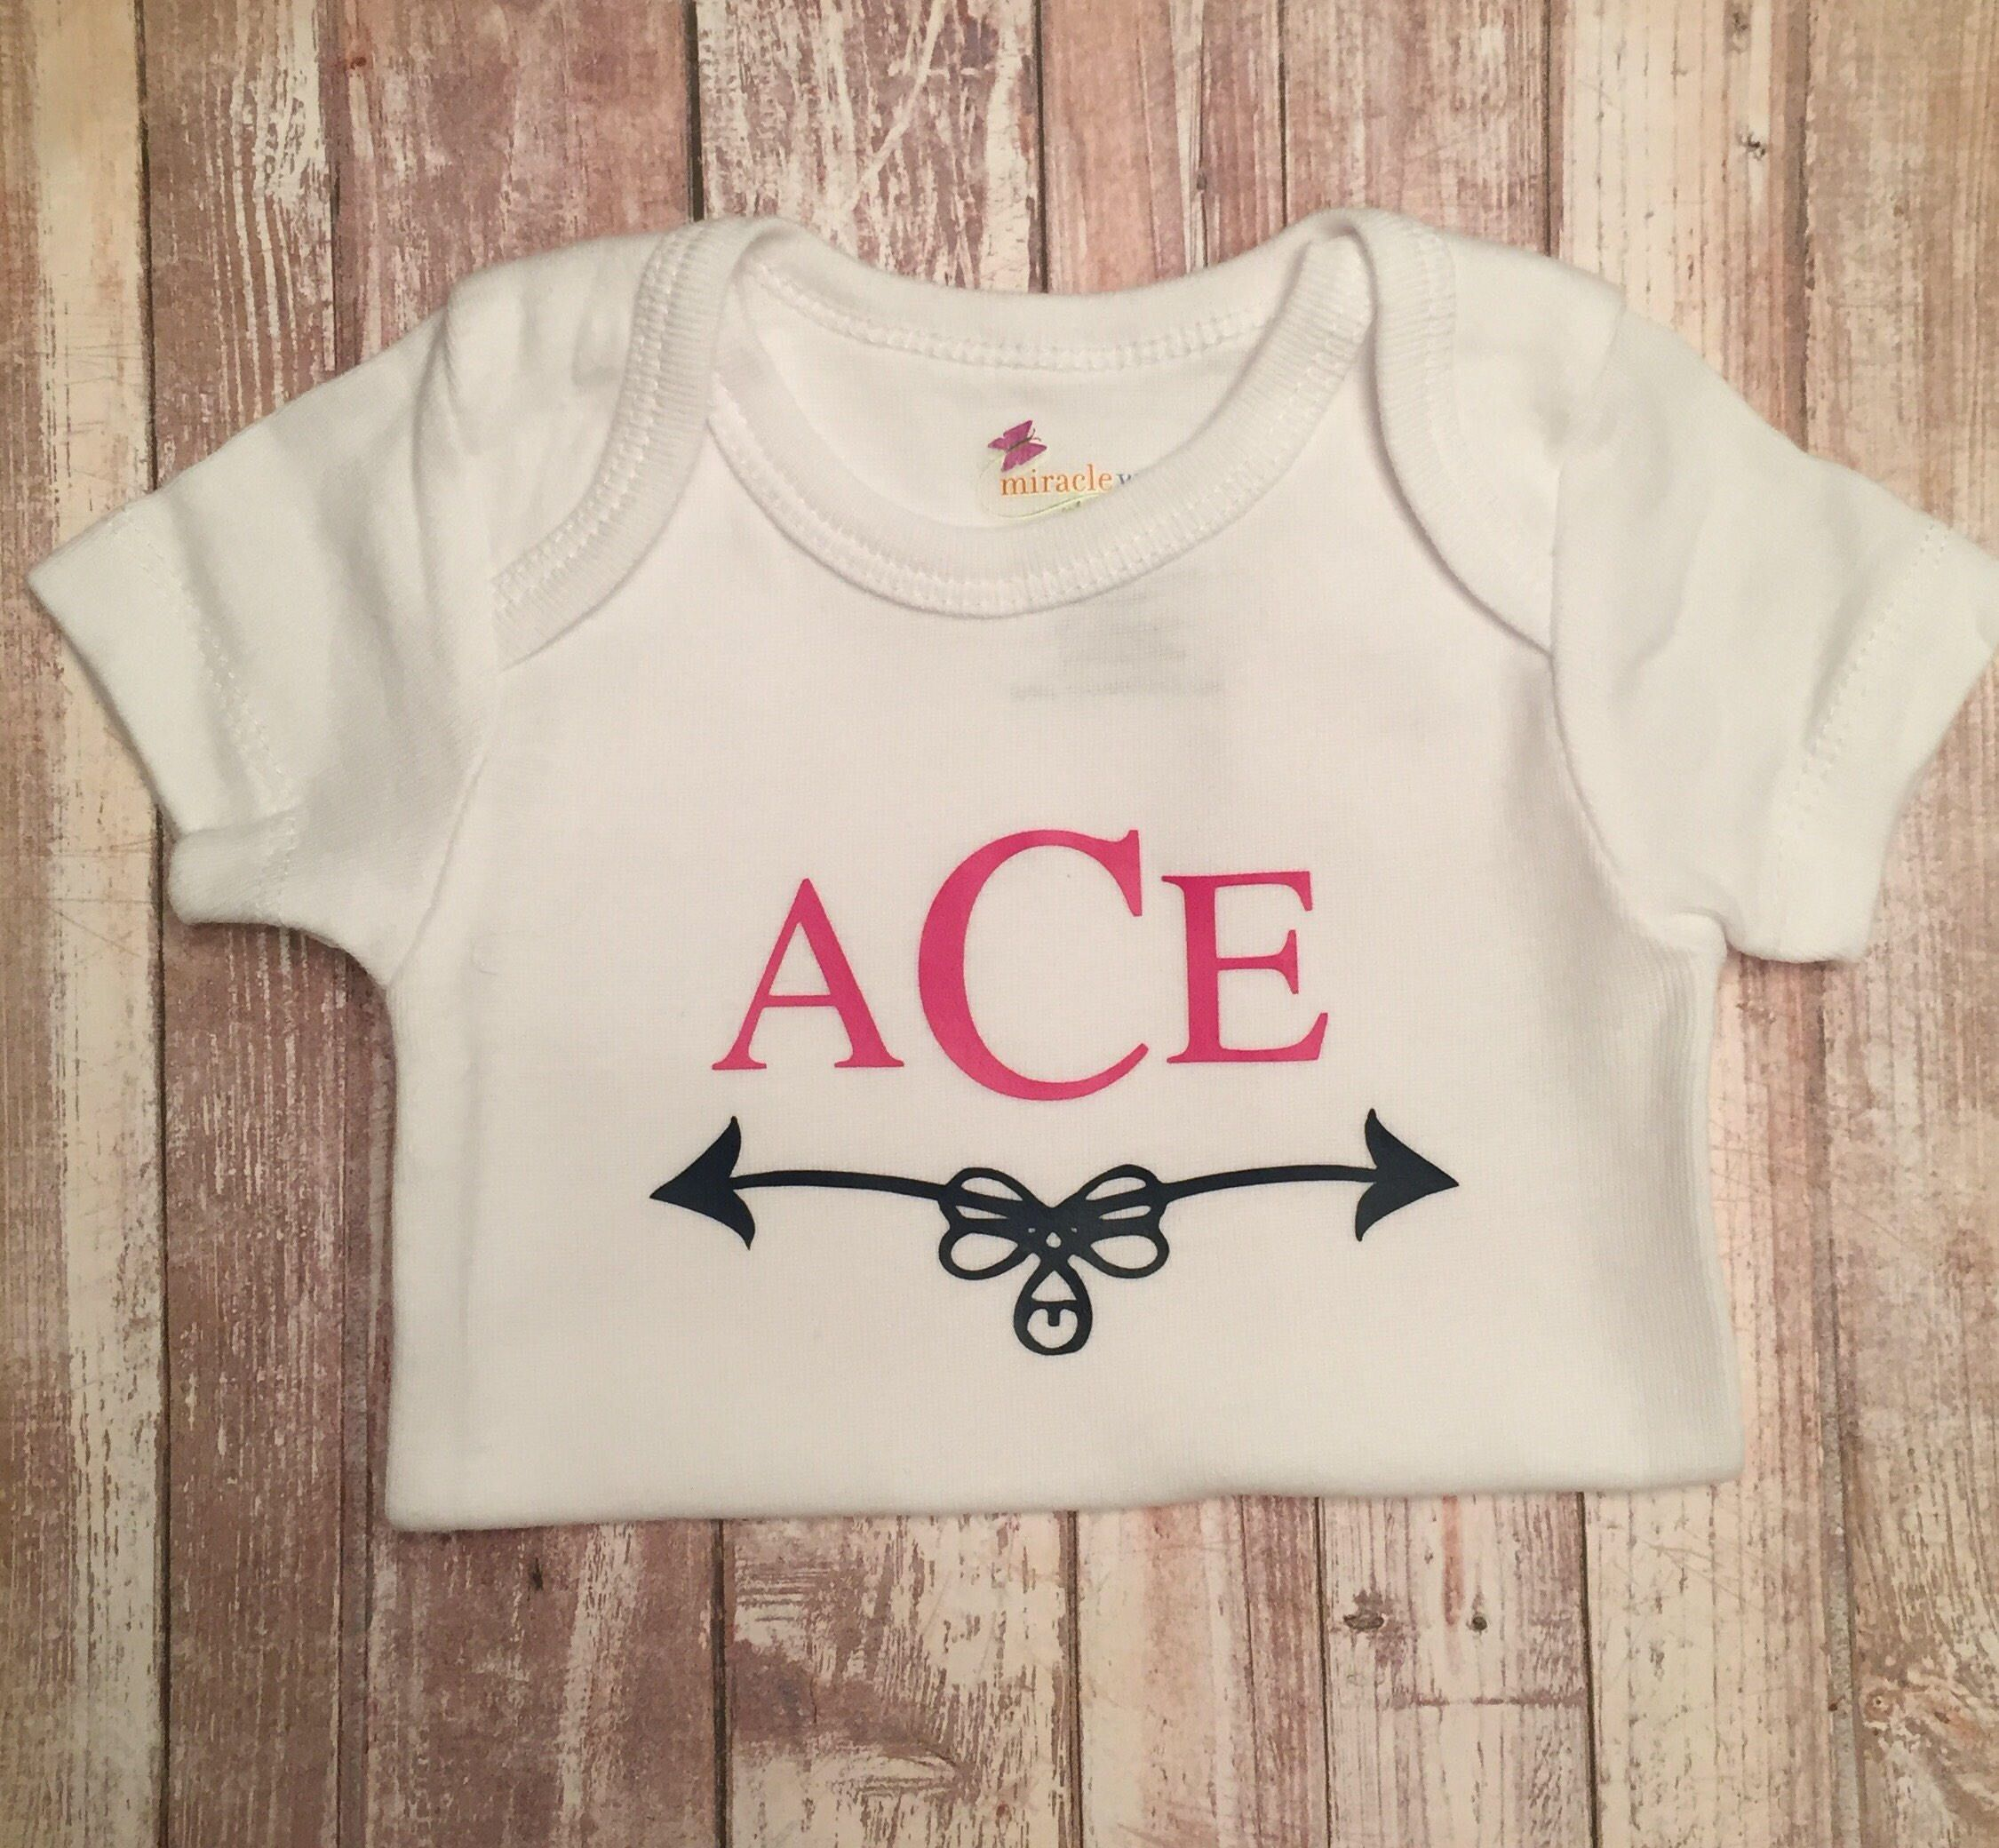 Monogrammed baby outfit coming home outfit baby shower gift monogrammed baby outfit coming home outfit baby shower gift personalized baby bodysuit negle Gallery